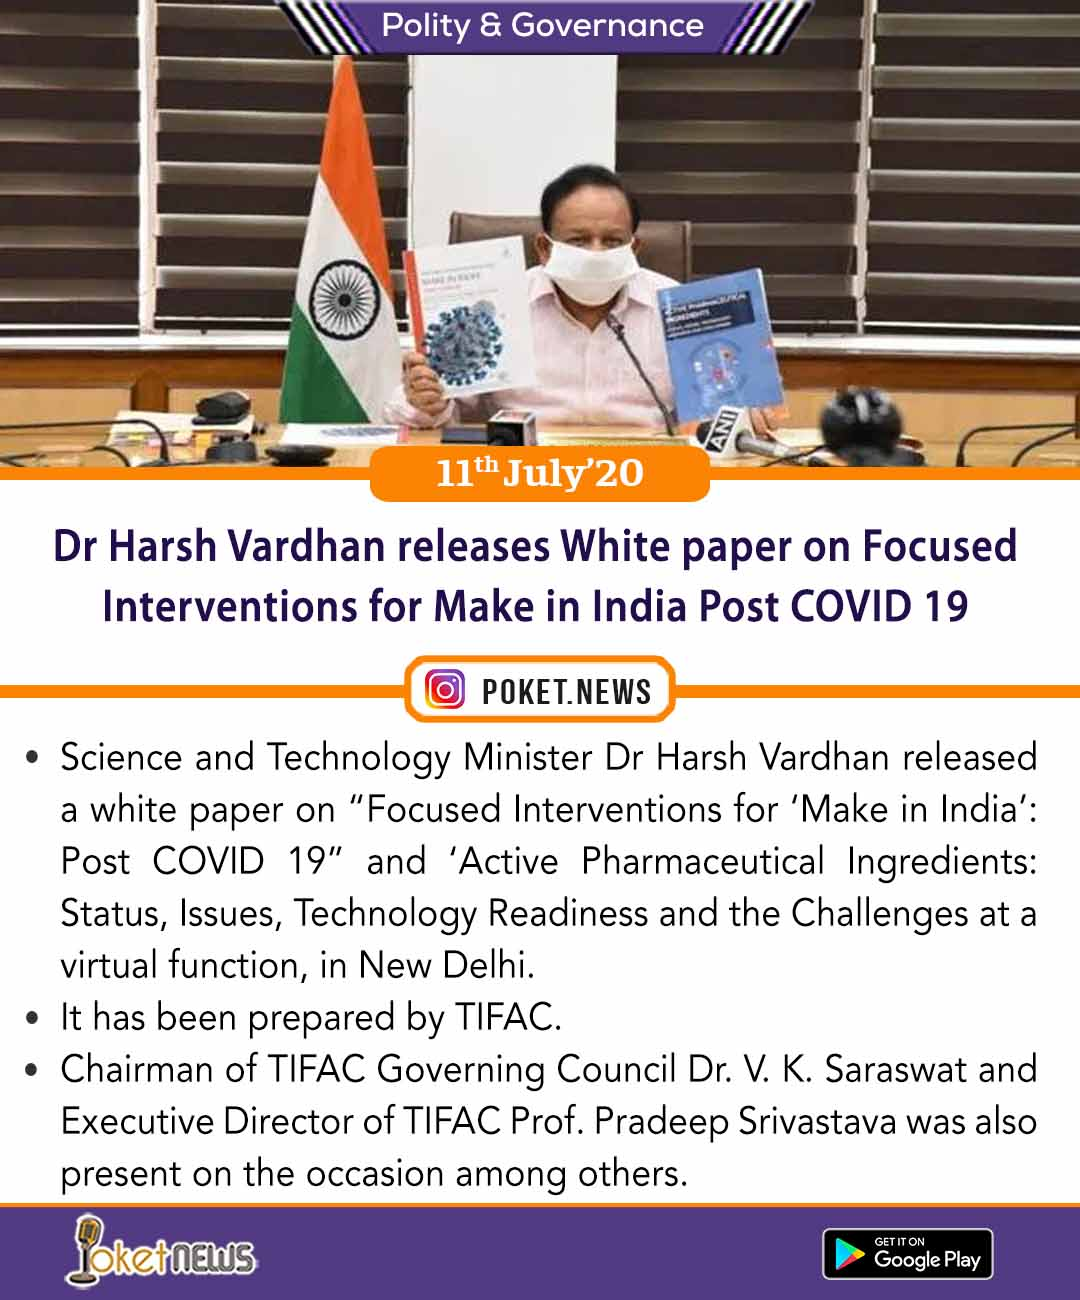 Dr Harsh Vardhan releases White paper on Focused Interventions for Make in India Post COVID 19